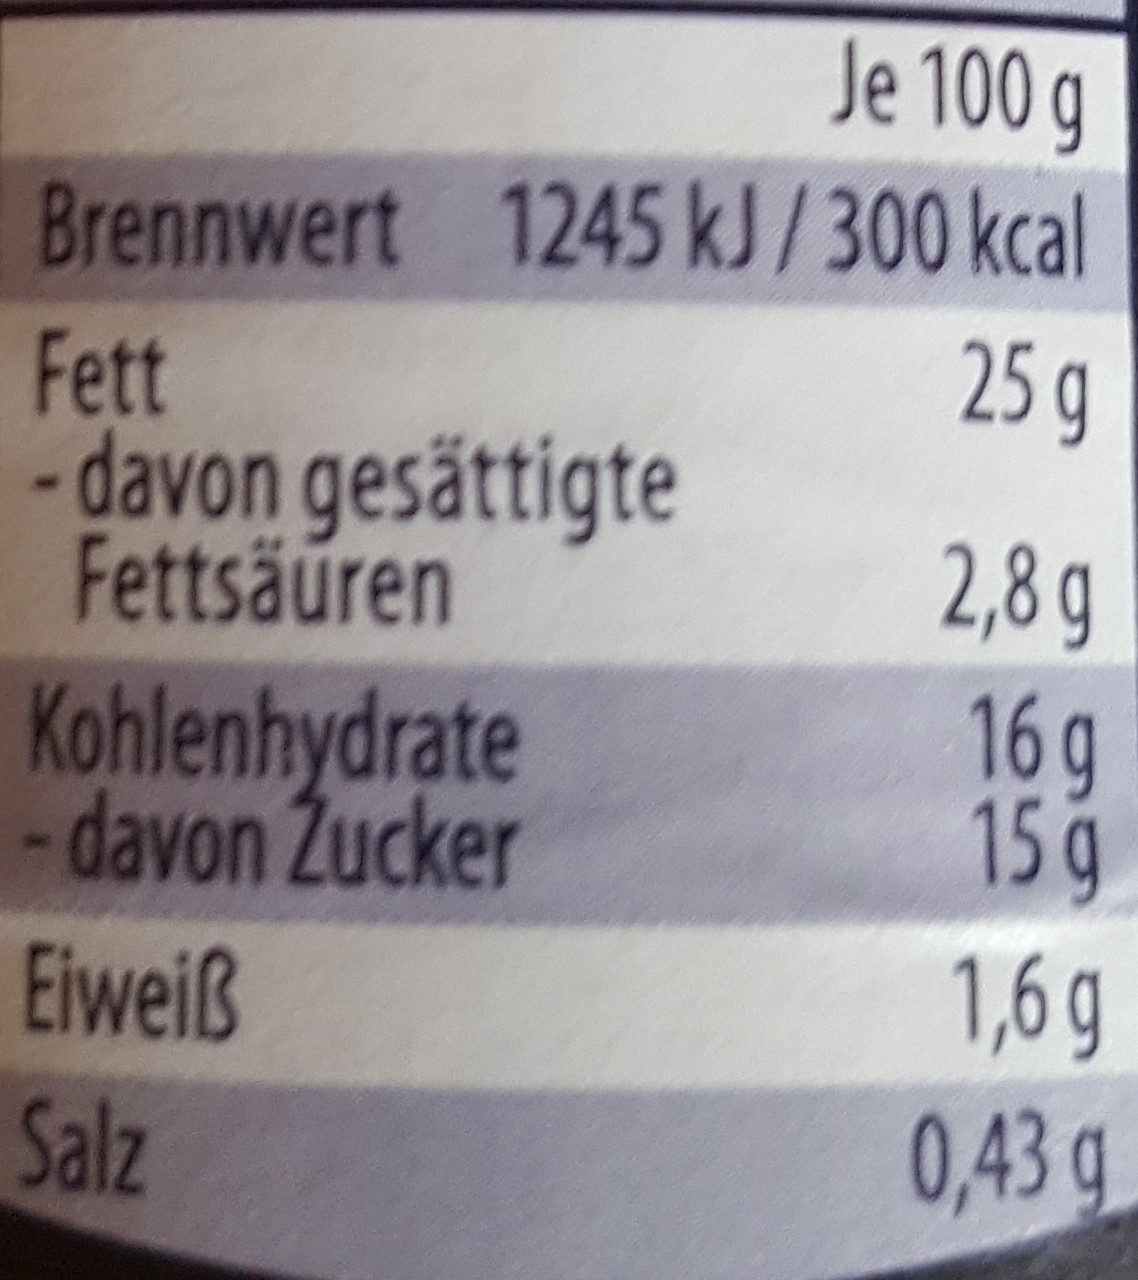 Apfel-Sahne-Meerrettich - Nutrition facts - de